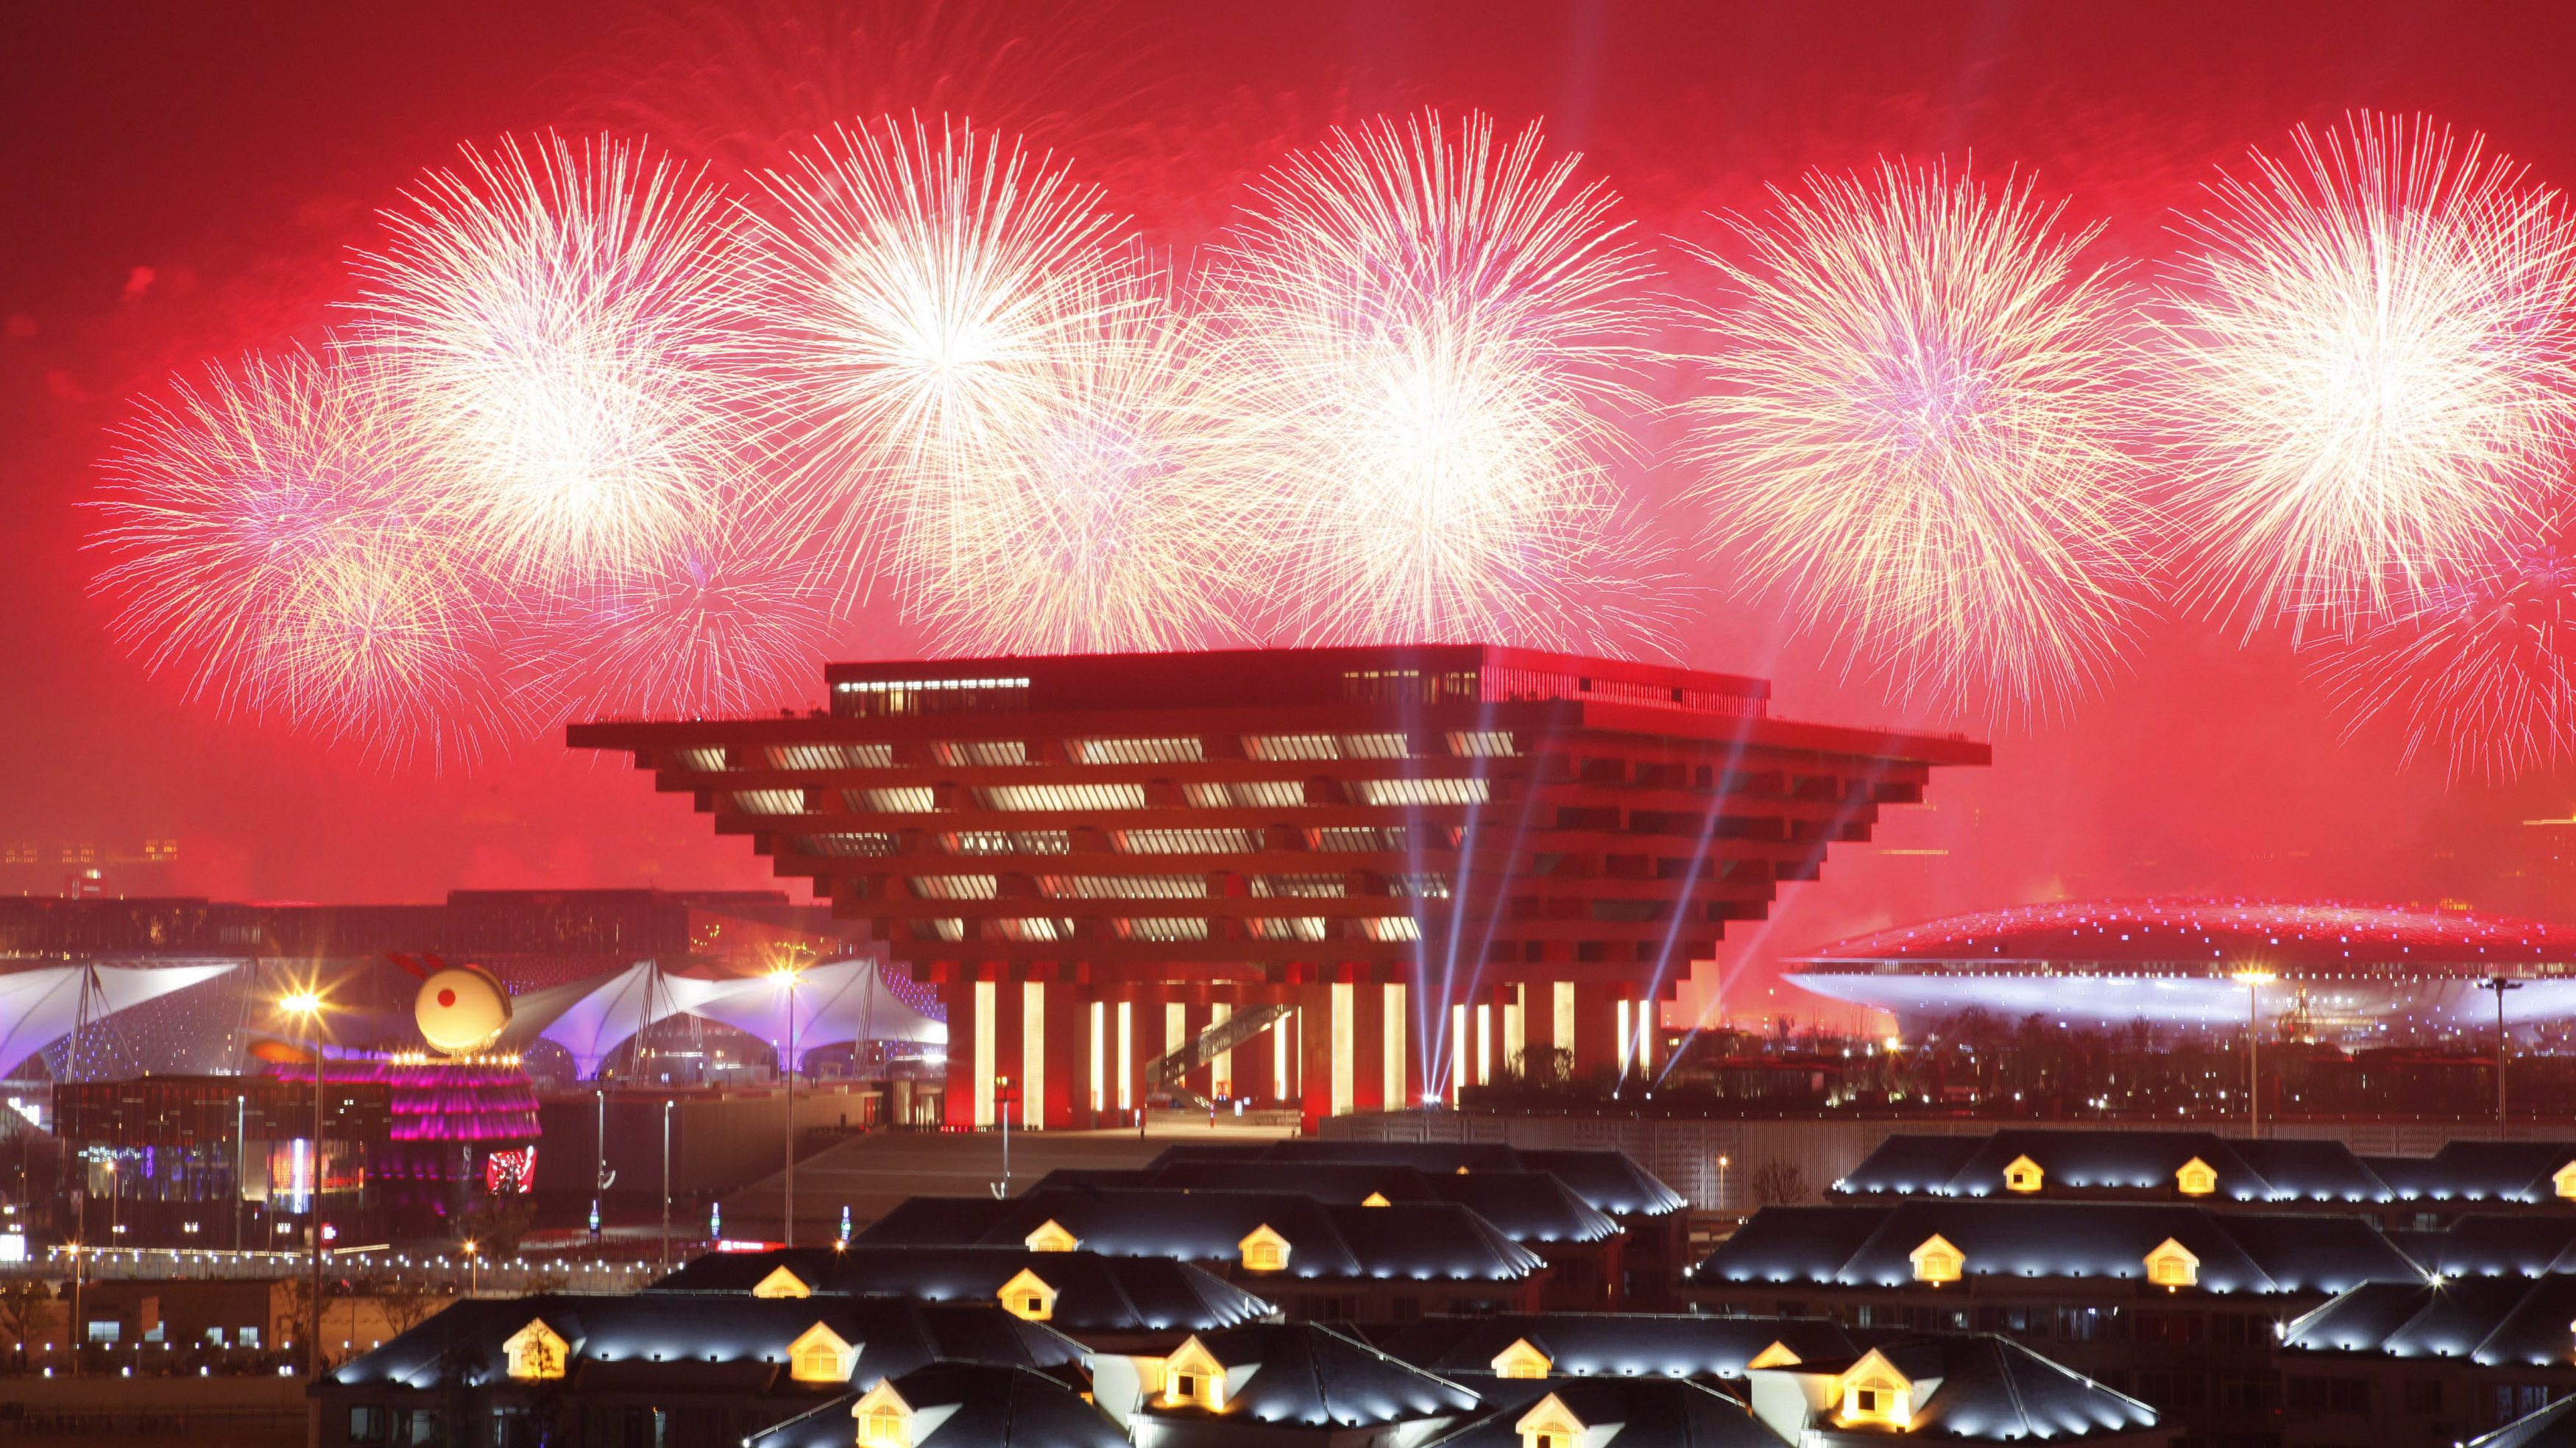 Fireworks explode above the China Pavilion as thousands of visitors watch during the opening ceremony of the Shanghai World Expo April 30, 2010. Shanghai unveils to the world on Friday its multi-billion dollar World Expo, an event many outside the country may struggle to recognise but which China hopes will be an opportunity to assert its growing global clout.